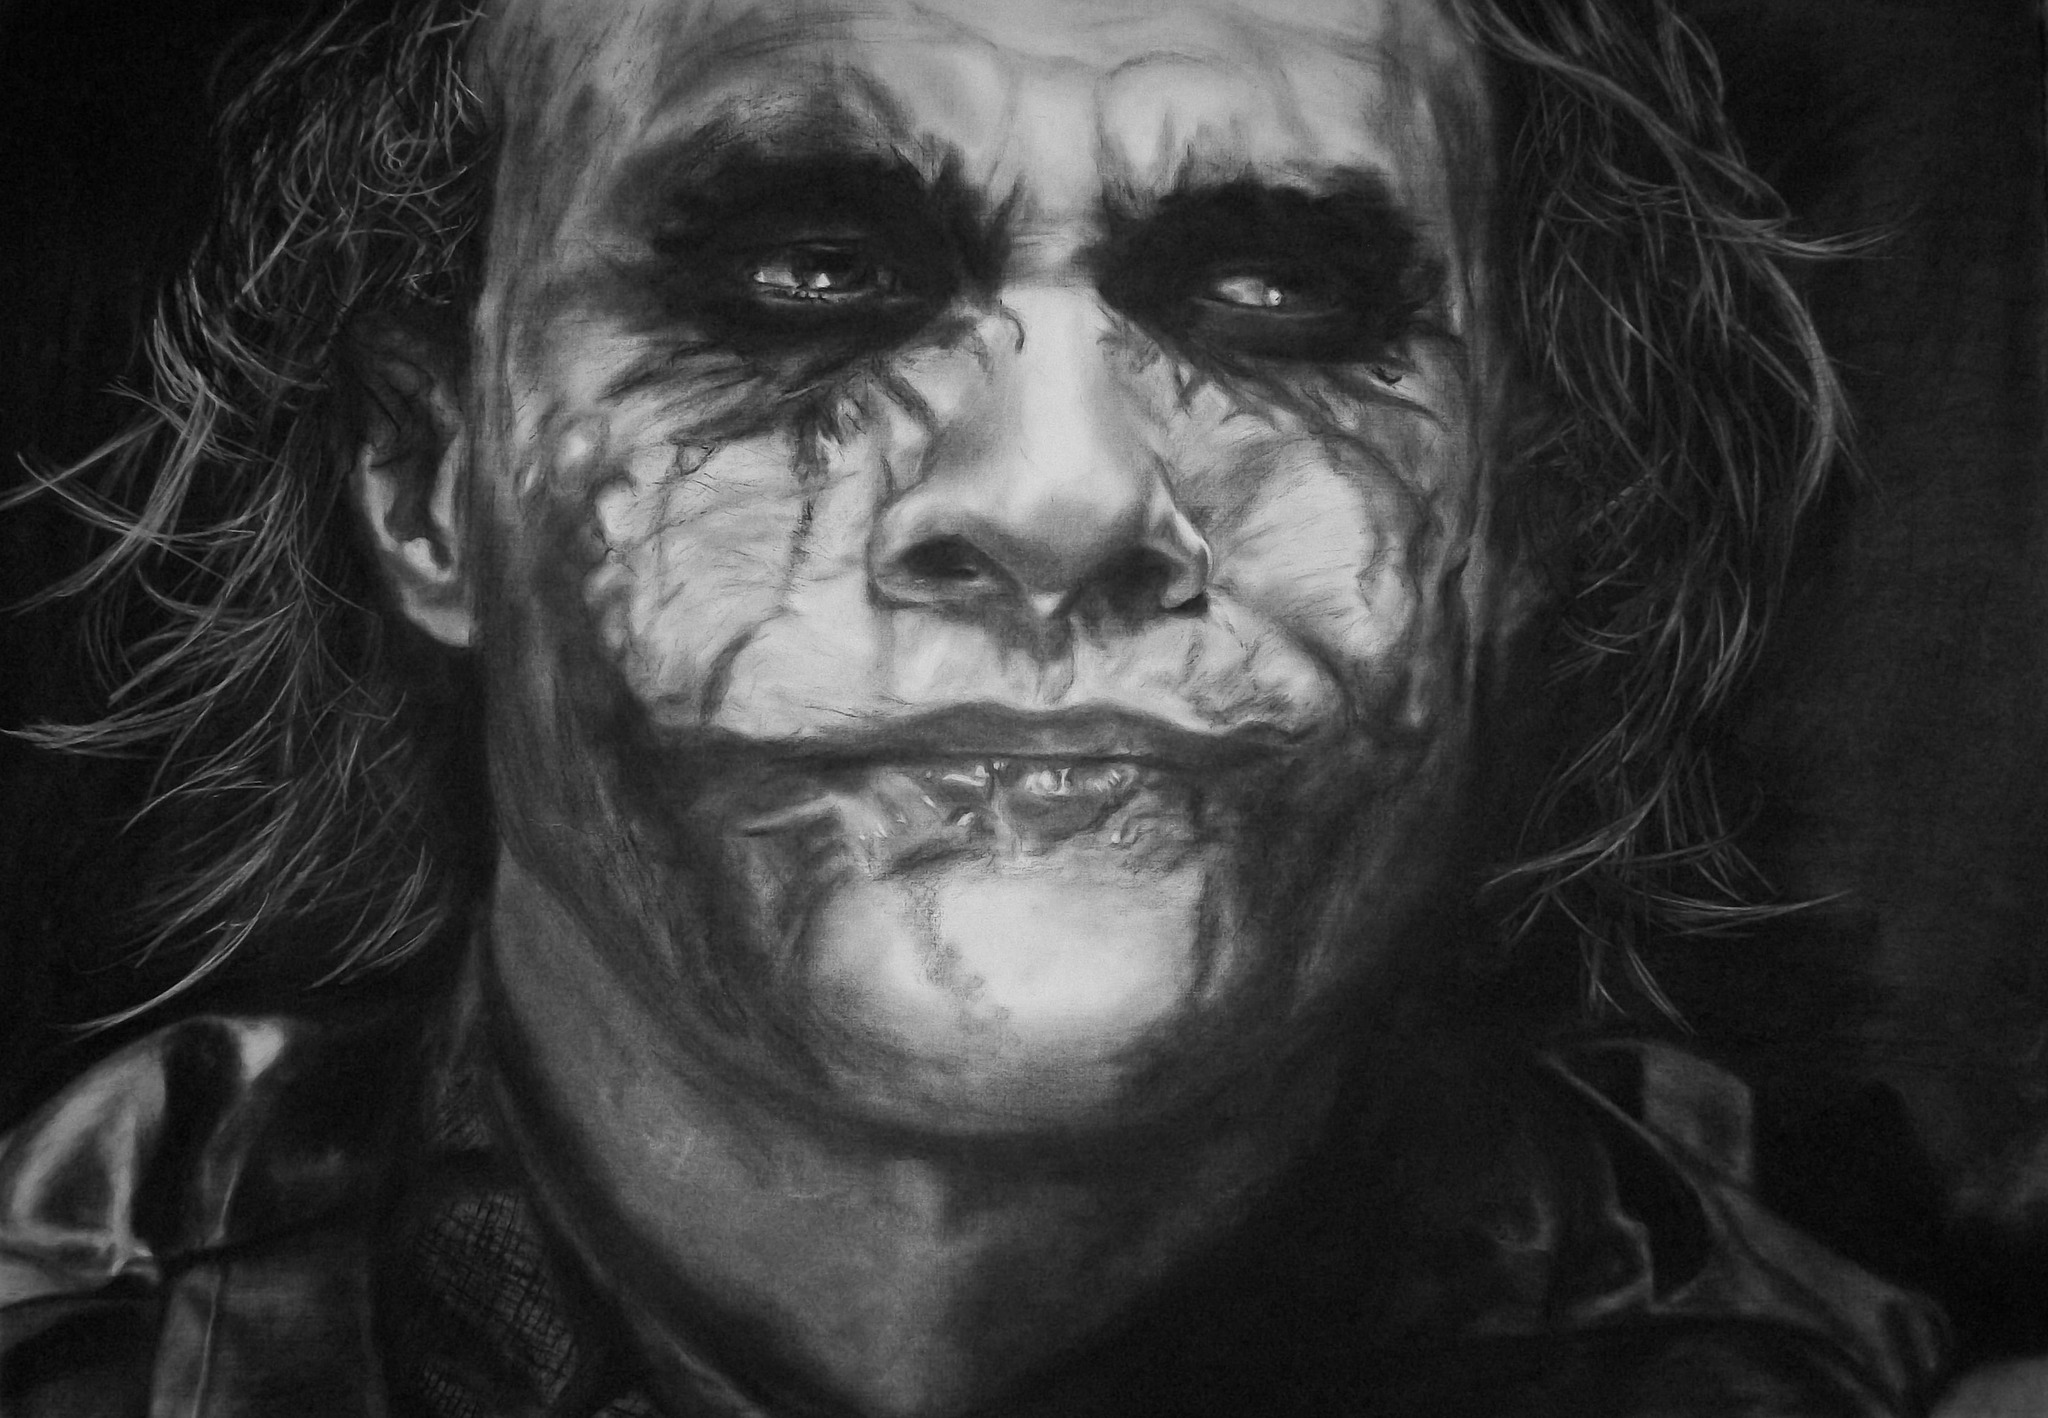 The Joker - Heath Ledger (Retrato/Realista/Gran tamaño)